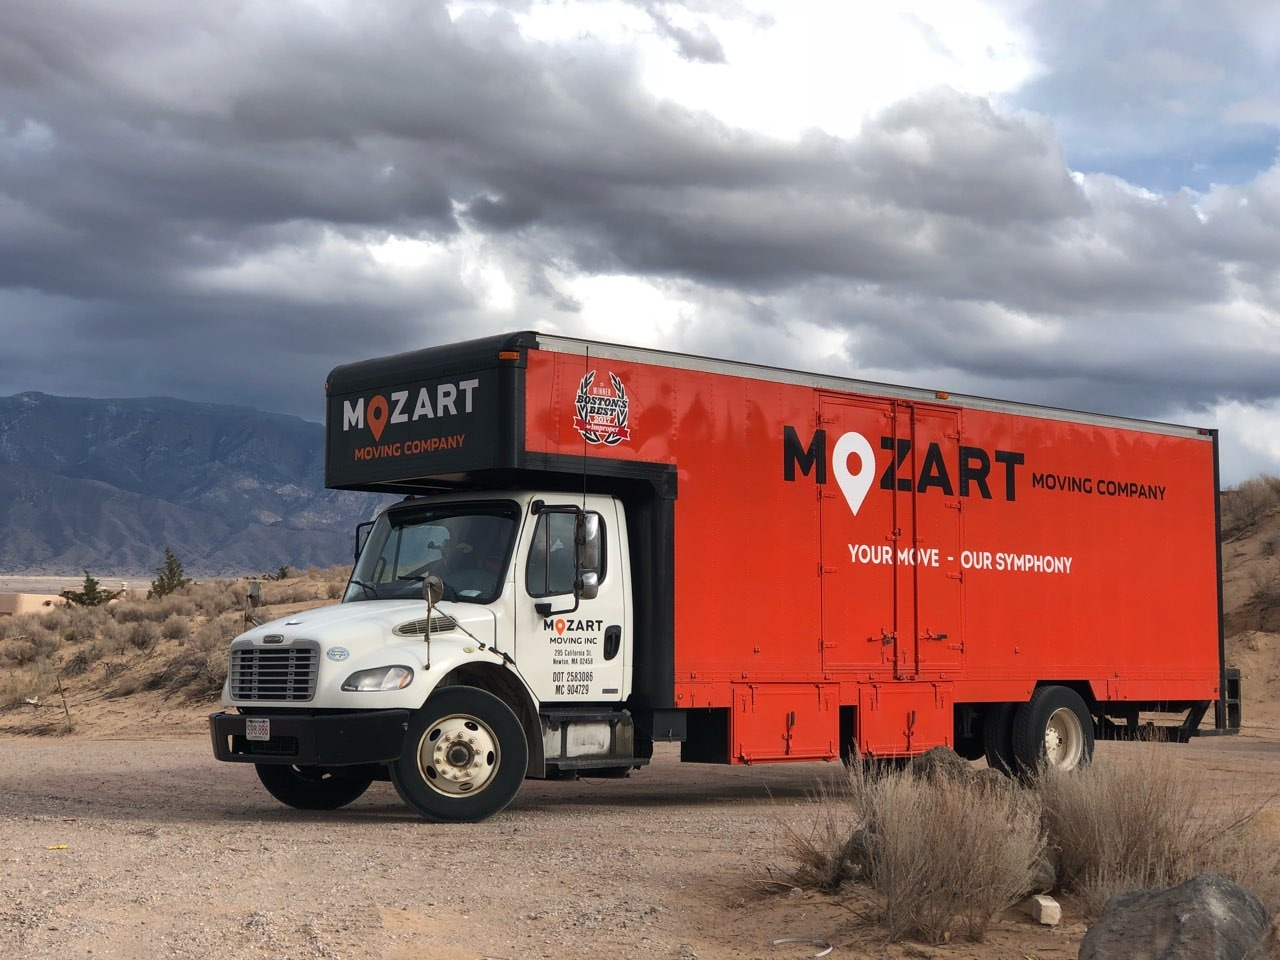 Mozart Moving Company